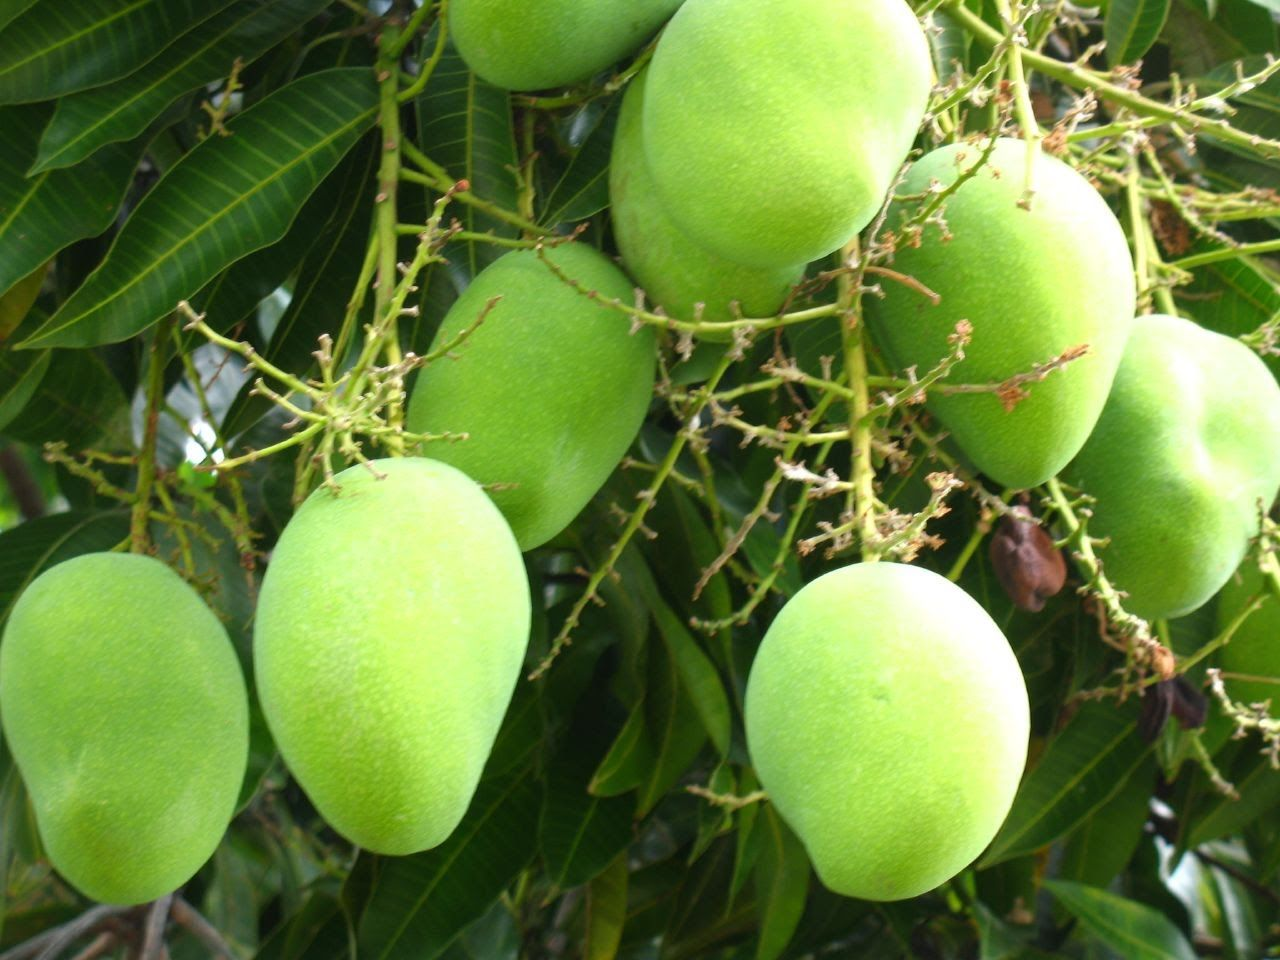 How To Grow Mango, How To Grow Mango Tree From Seed, Khmer Agriculture